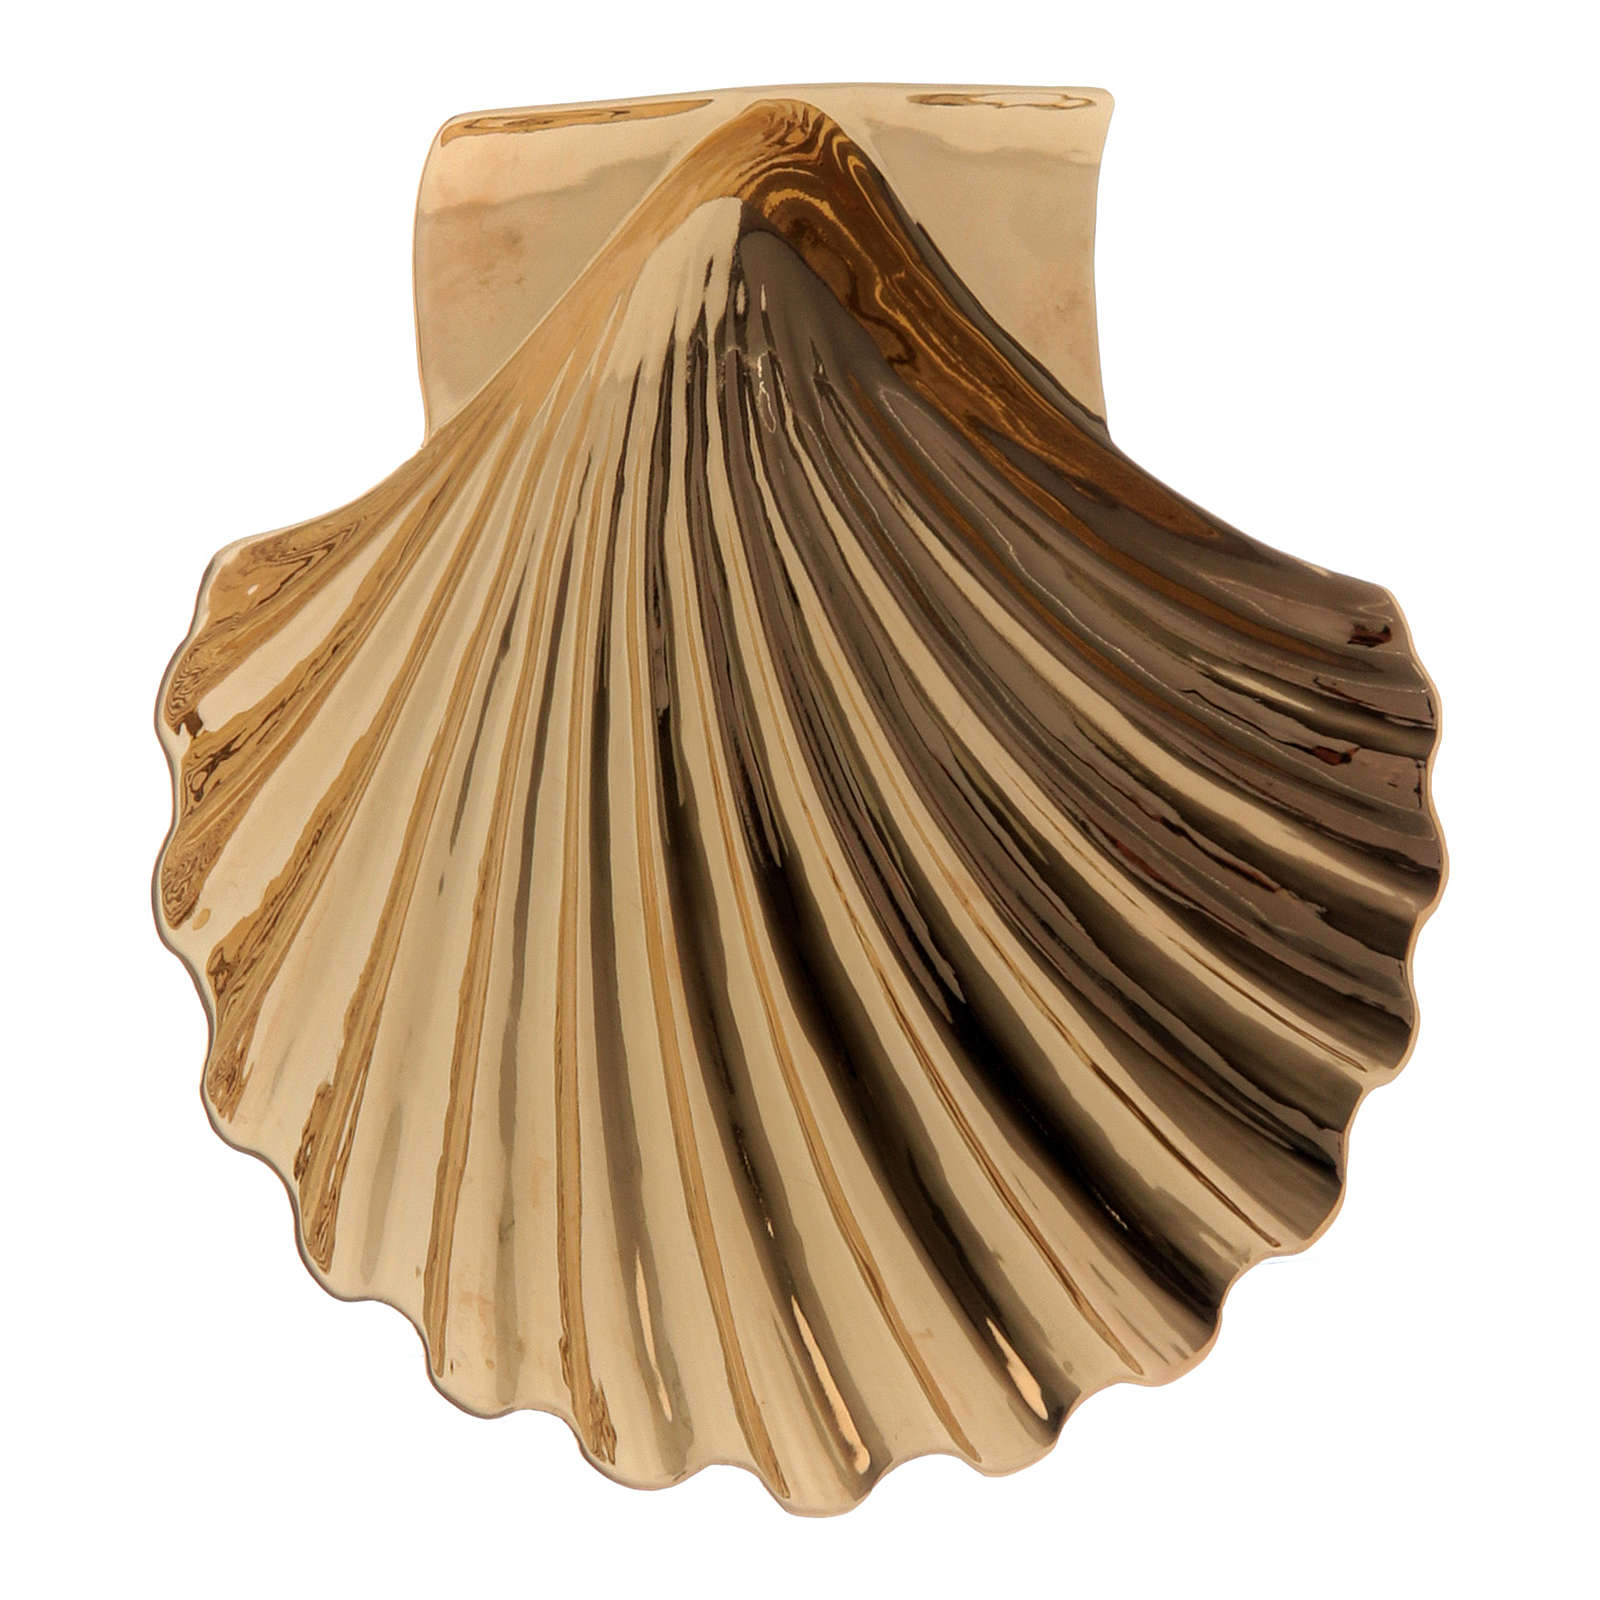 Christening shell in golden brass by Molina 3